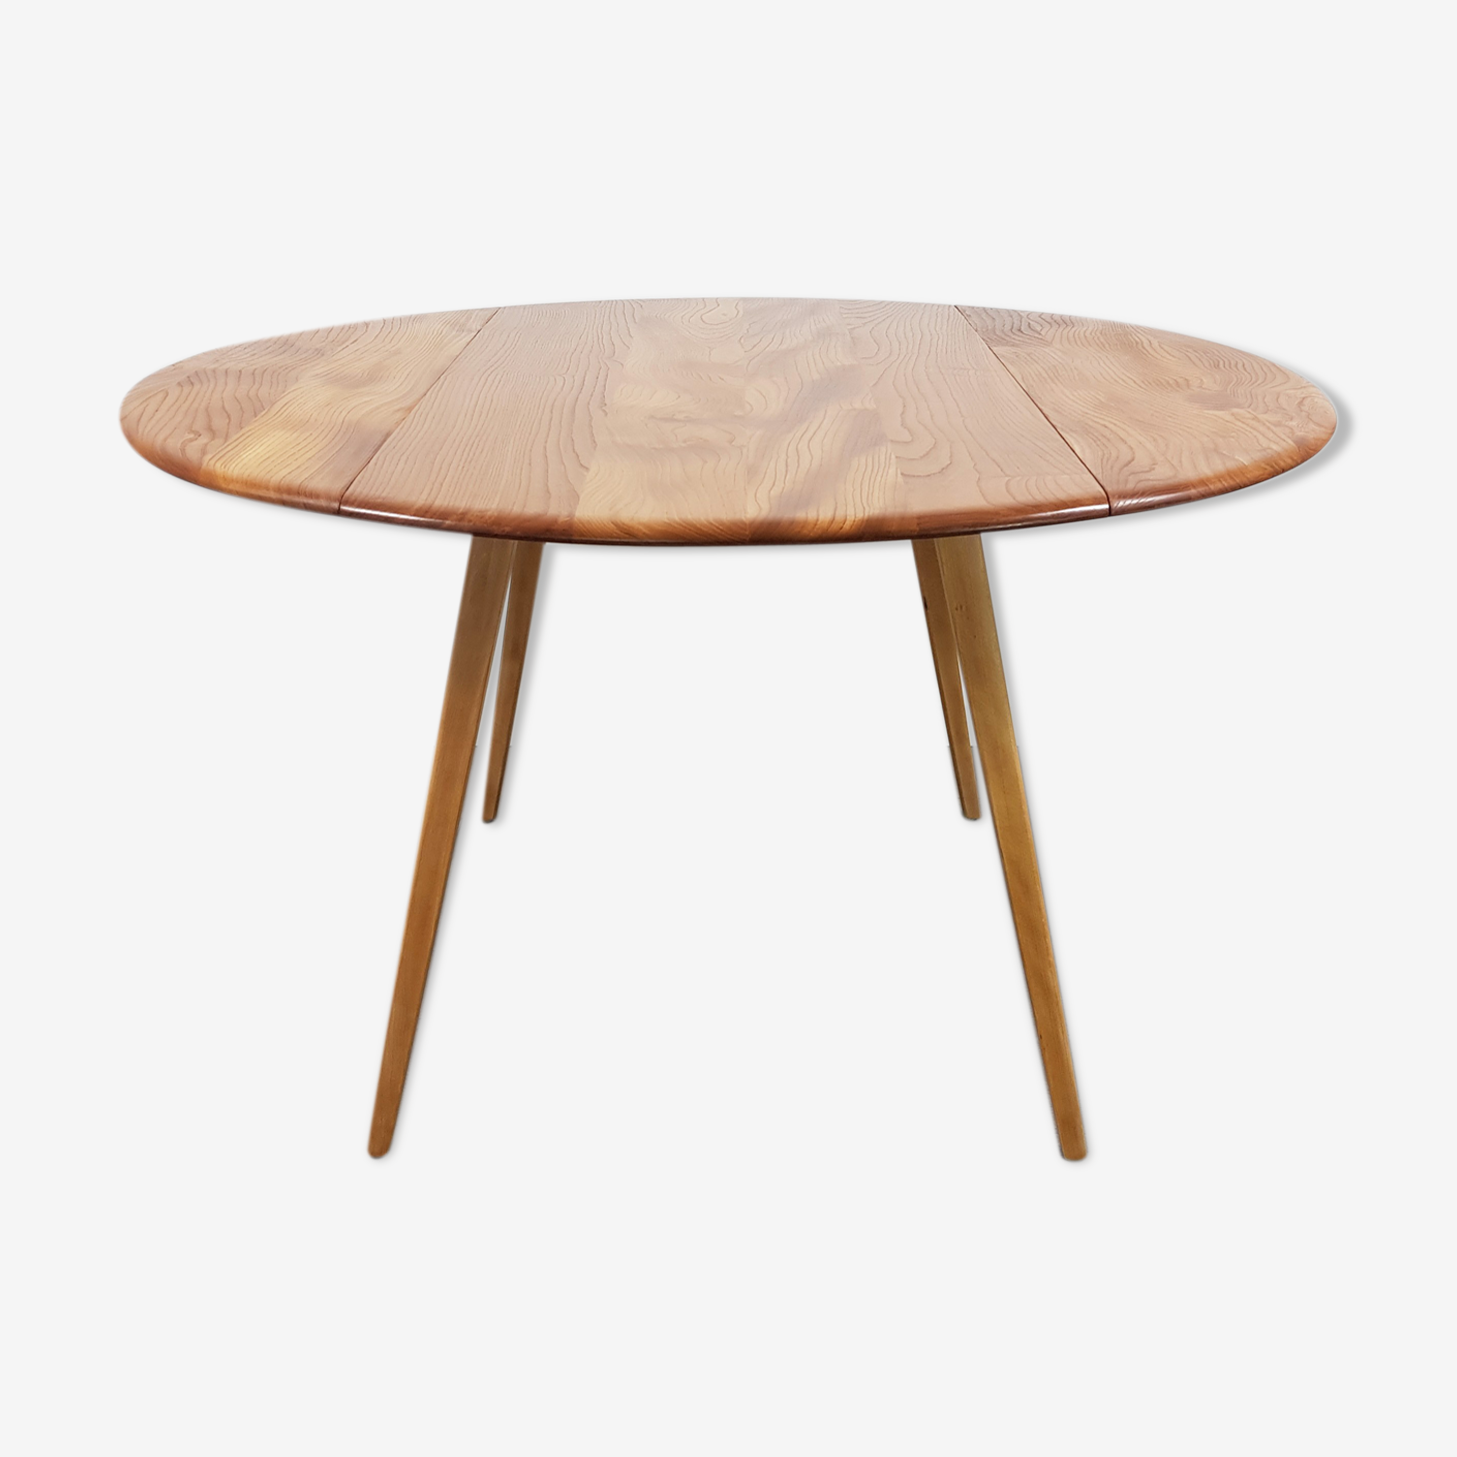 Table by Lucian Ercolani for Ercol